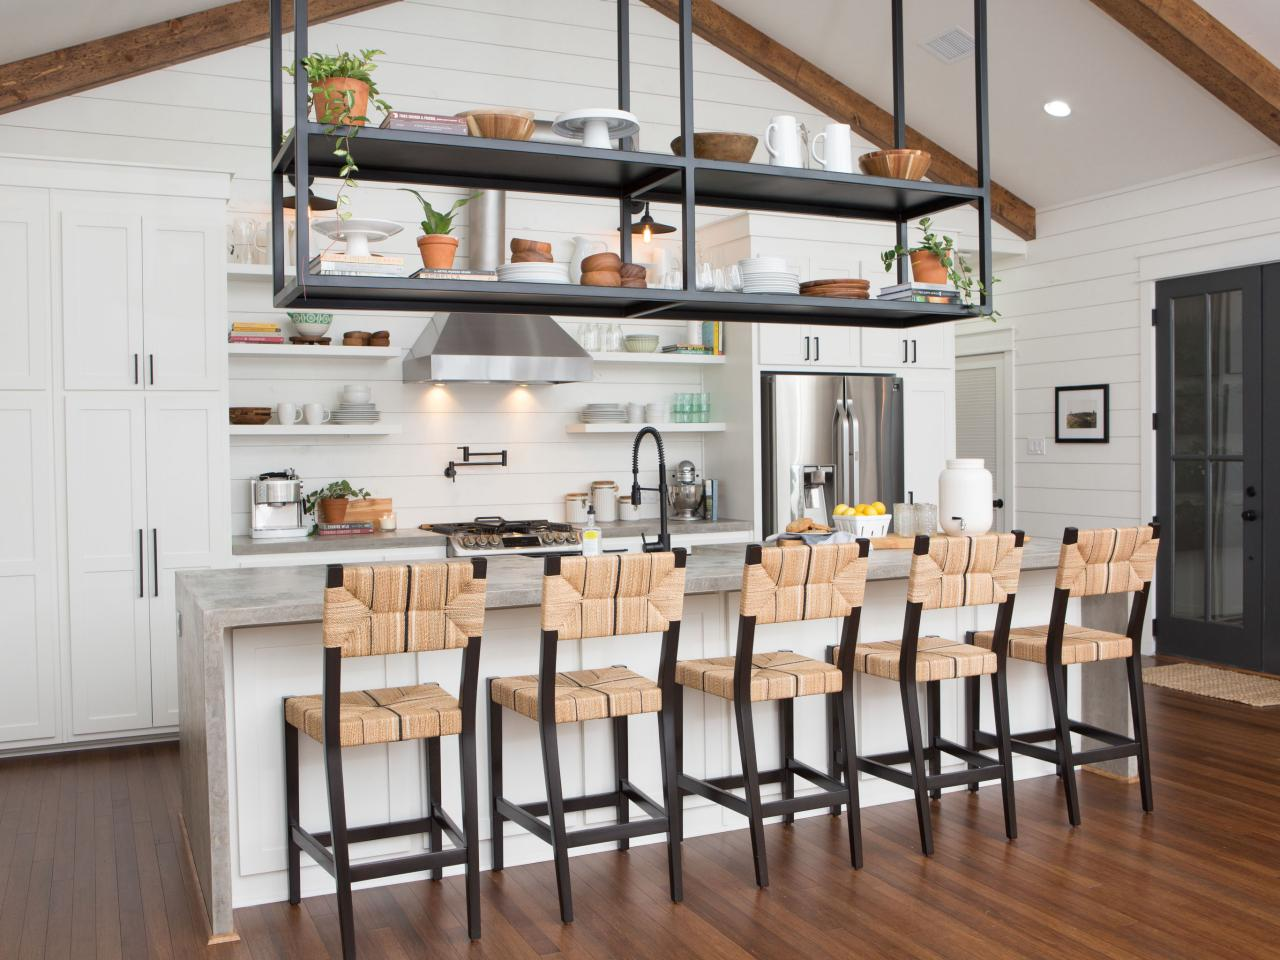 stylish kitchen island ideas decorating design blog floating shelves over remodeled with concrete lack ikea furniture corner garage storage plastic kmart barn wood multiple wall